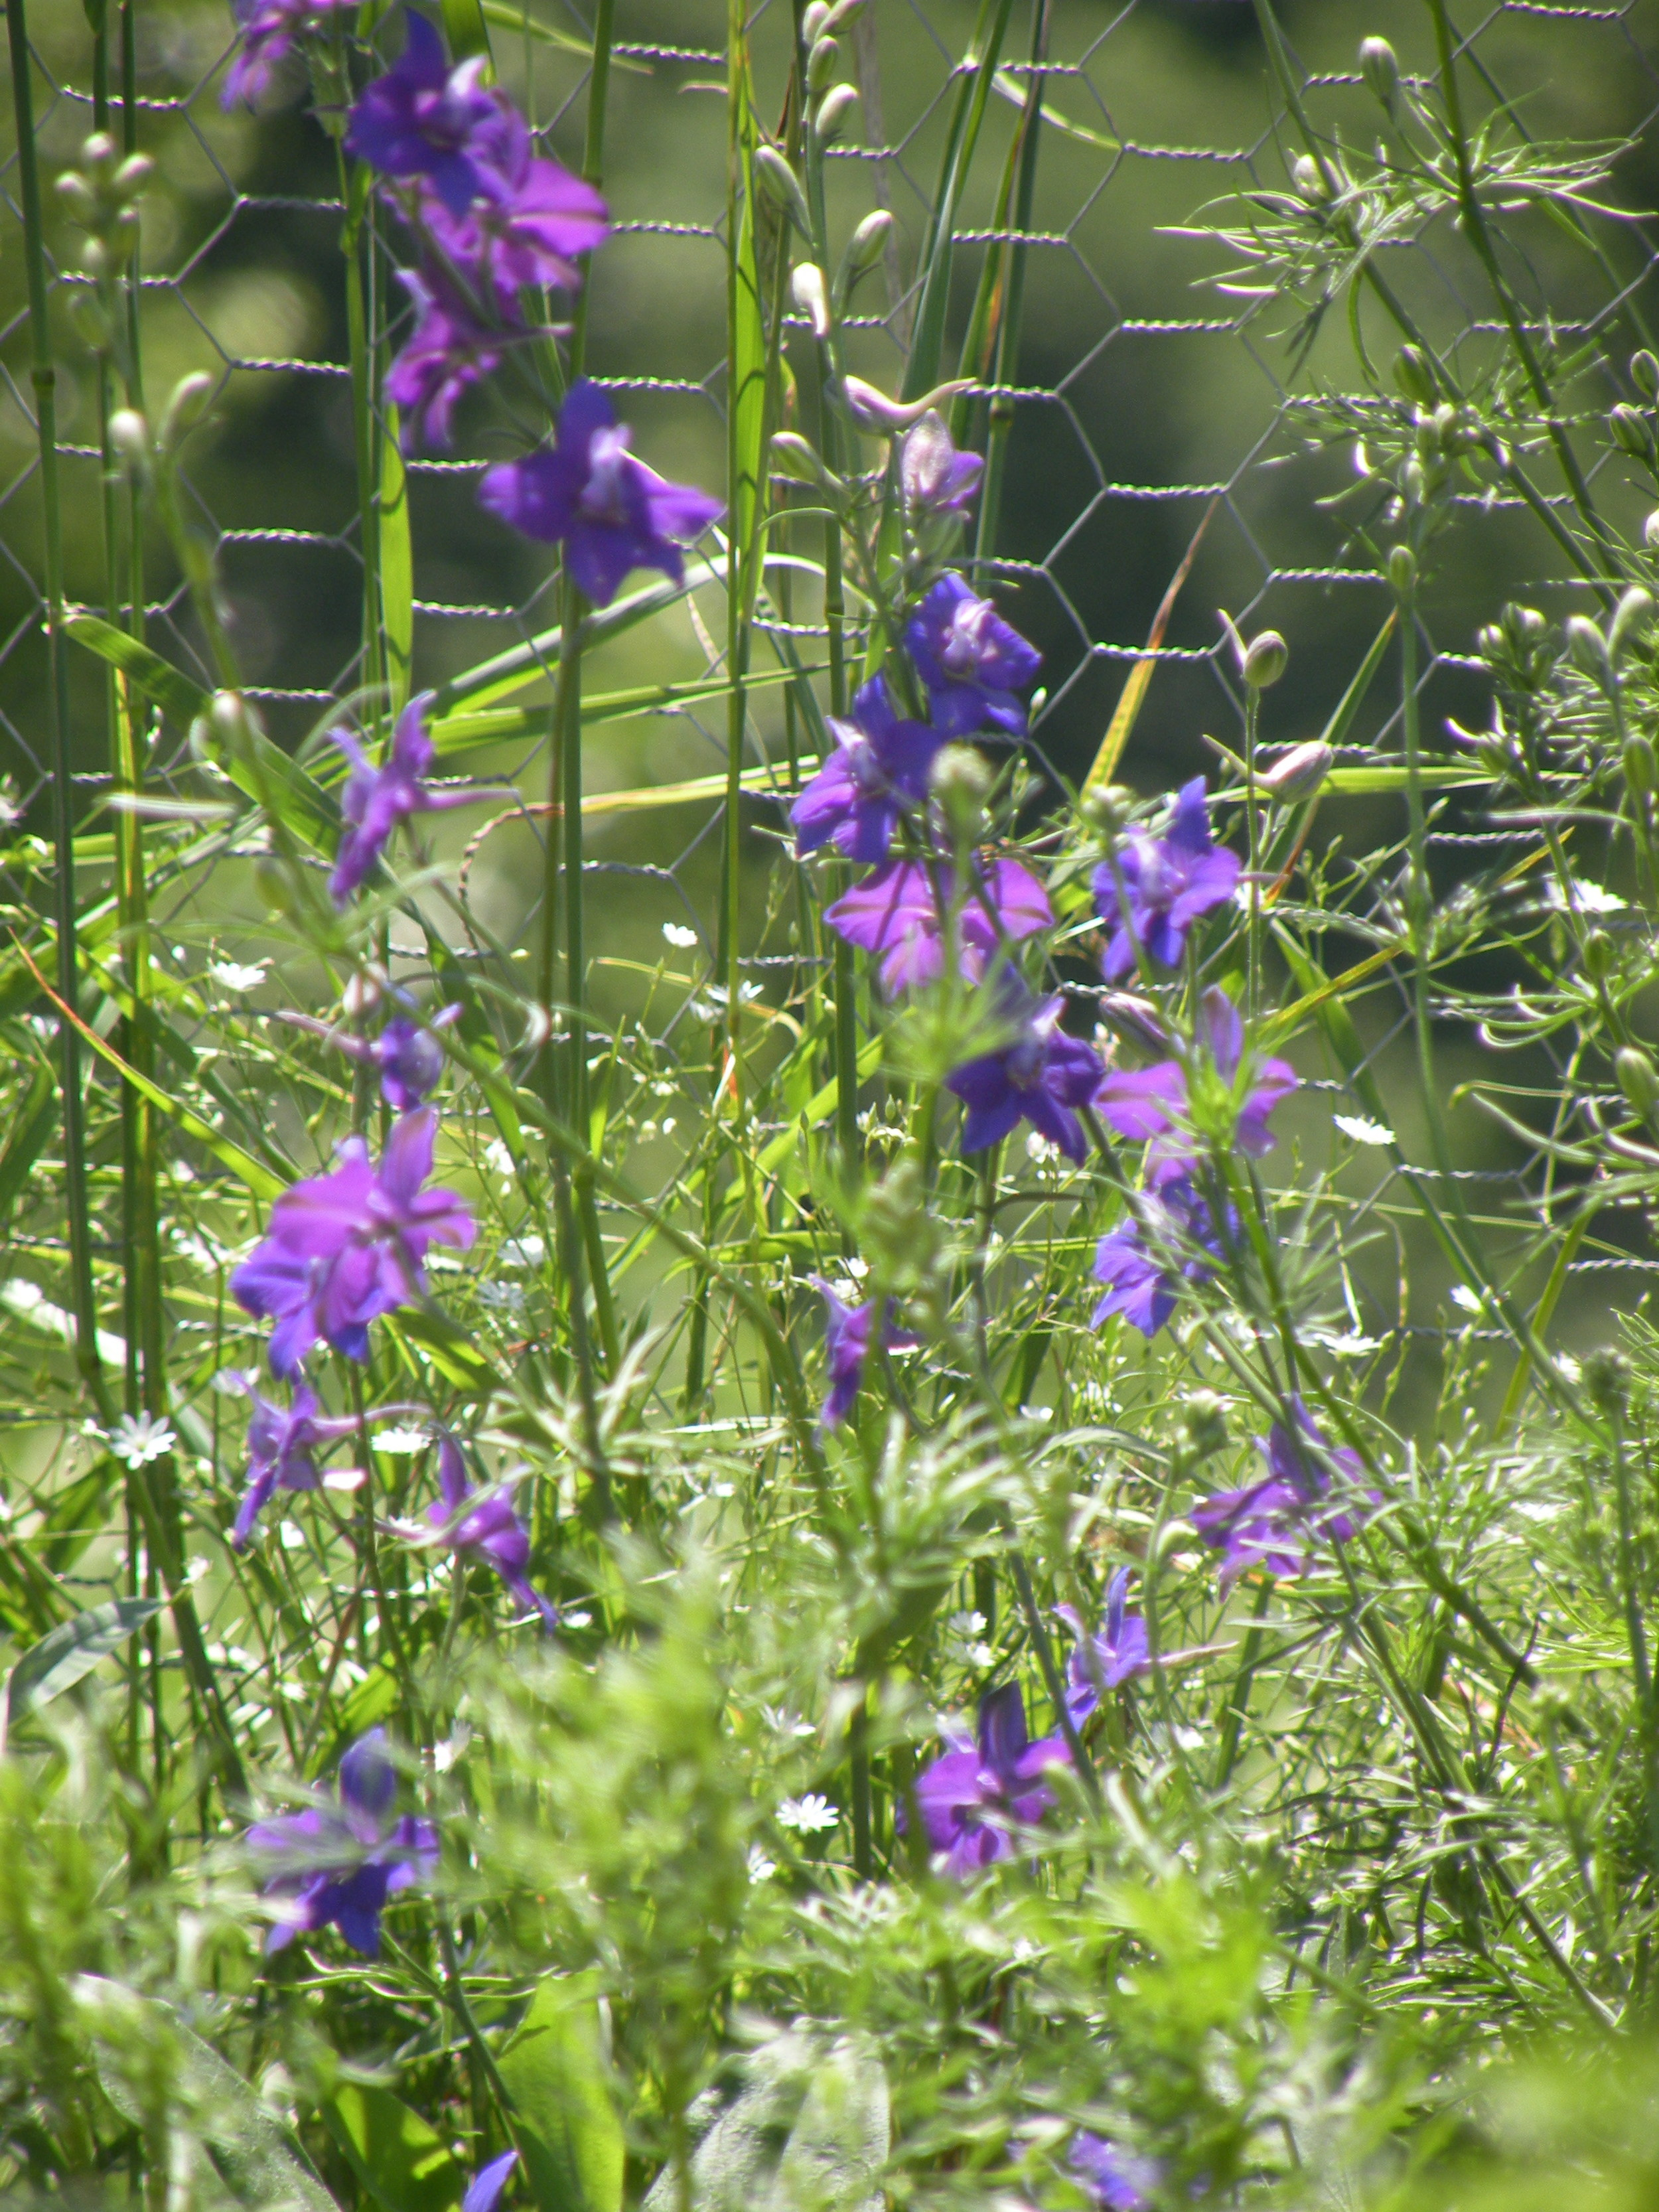 Larkspur blossoms opening along the flower field edges. Photo by Rob McClure